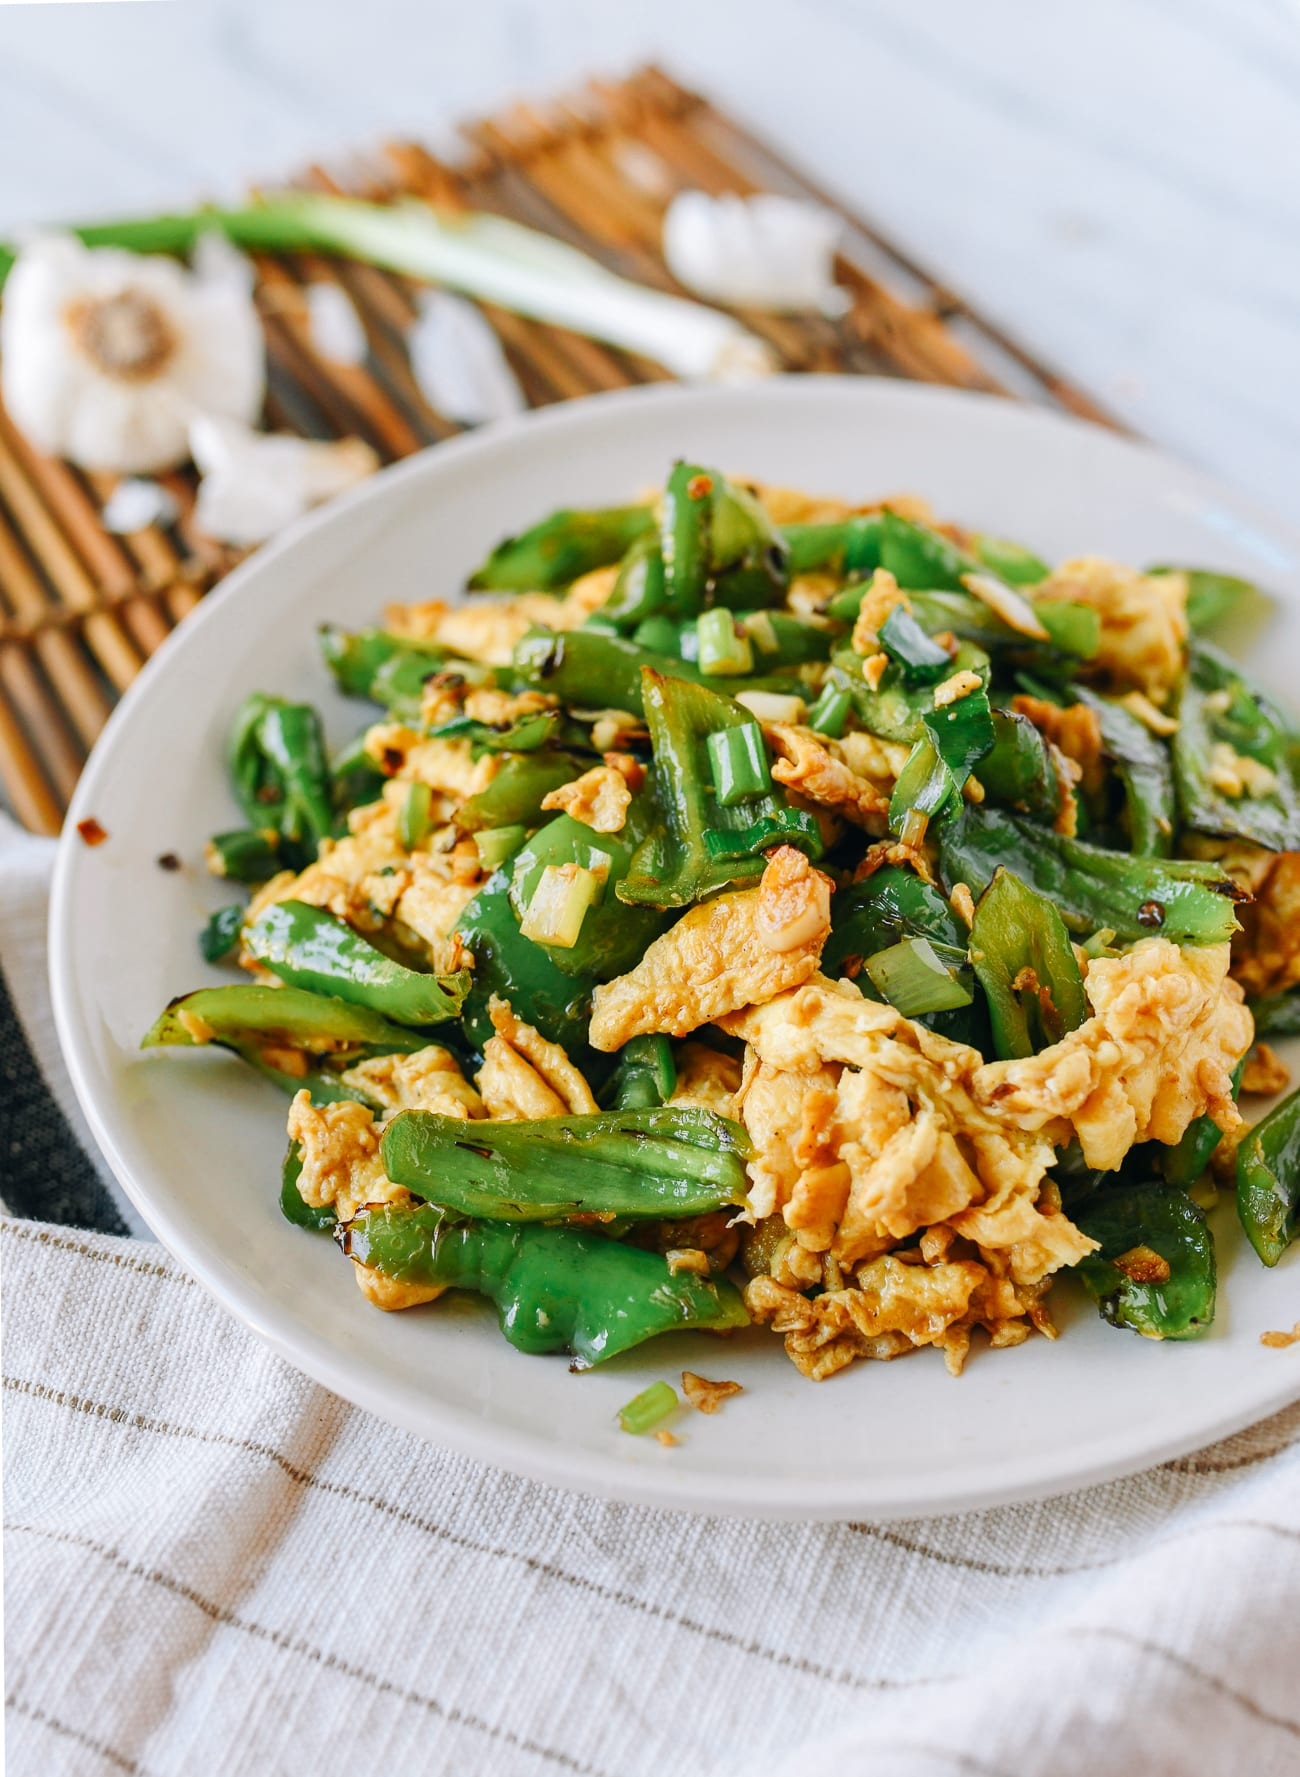 Quick Egg Stir-Fry with Peppers